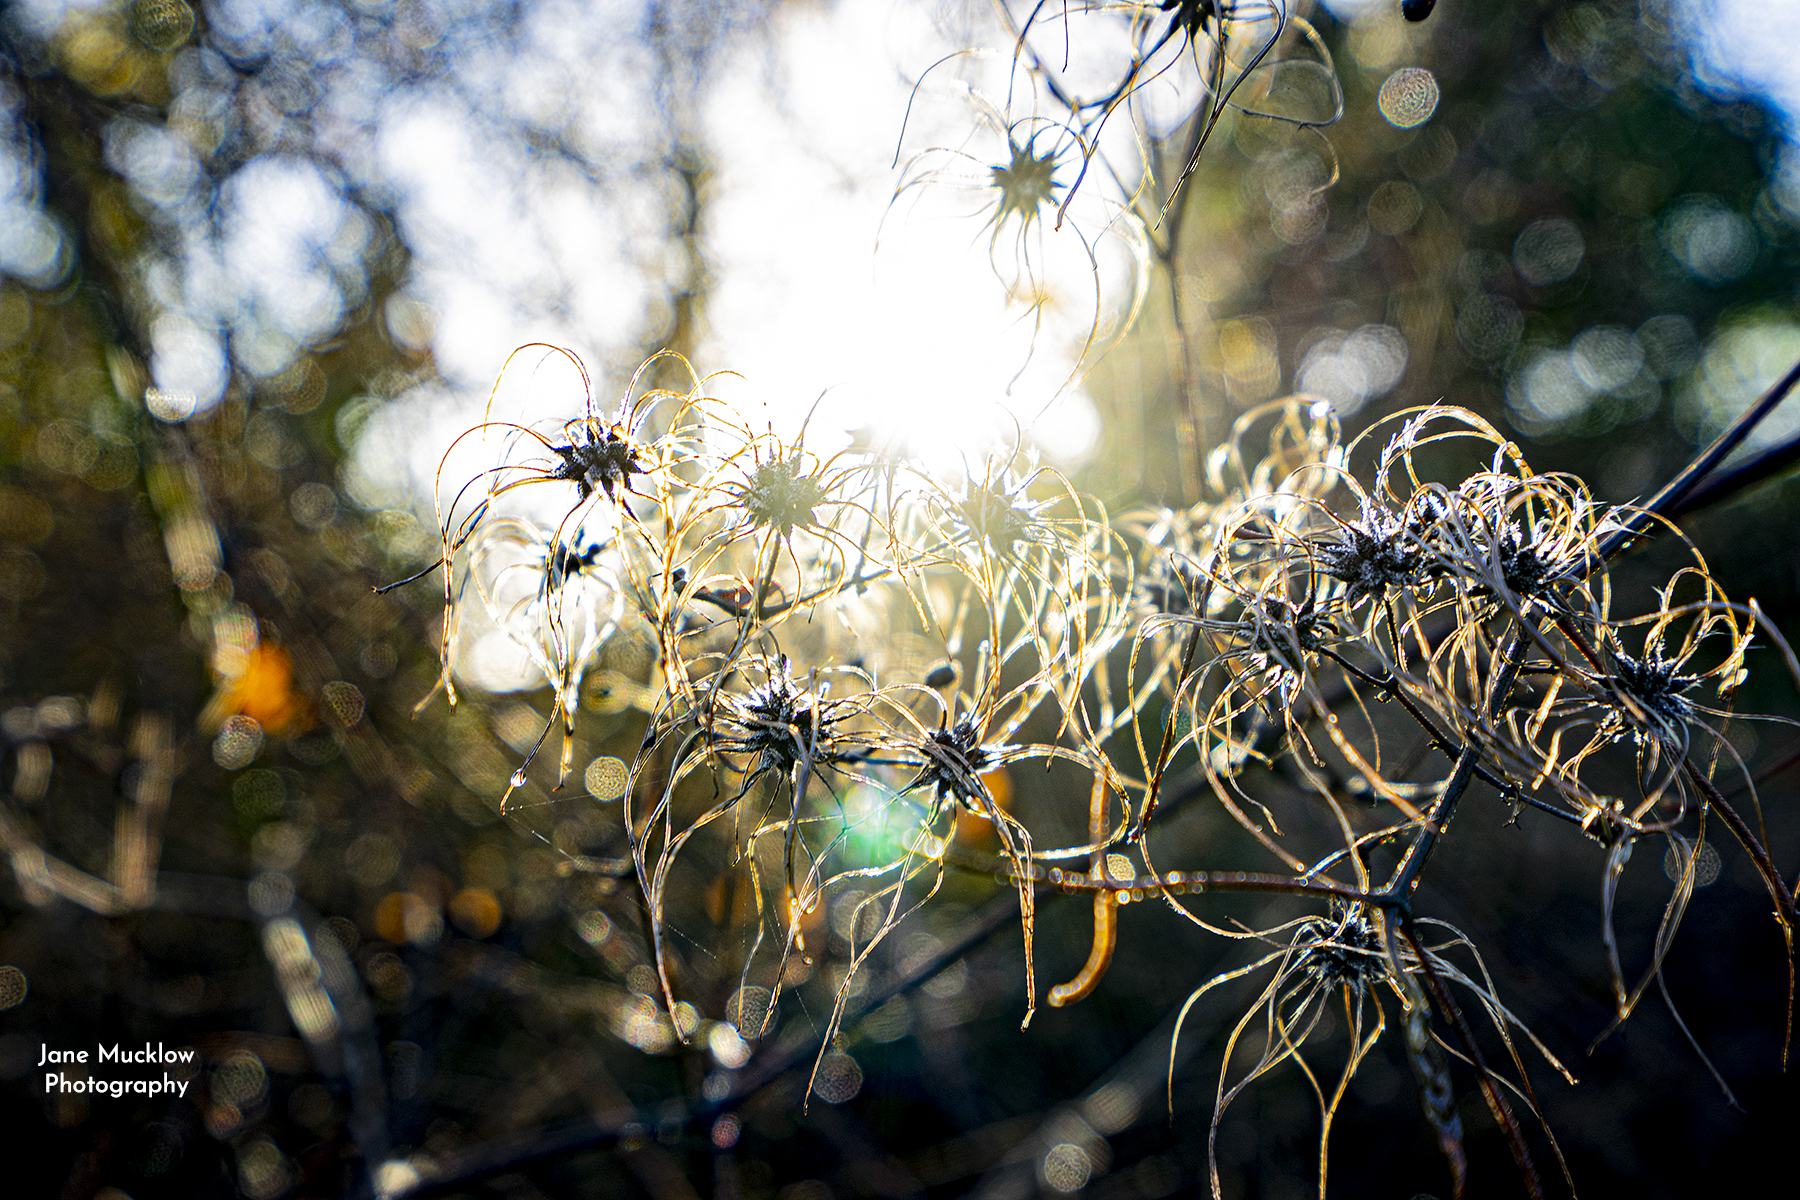 Photo of old man's beard in the winter sun at Lullingstone Kent by Jane Mucklow